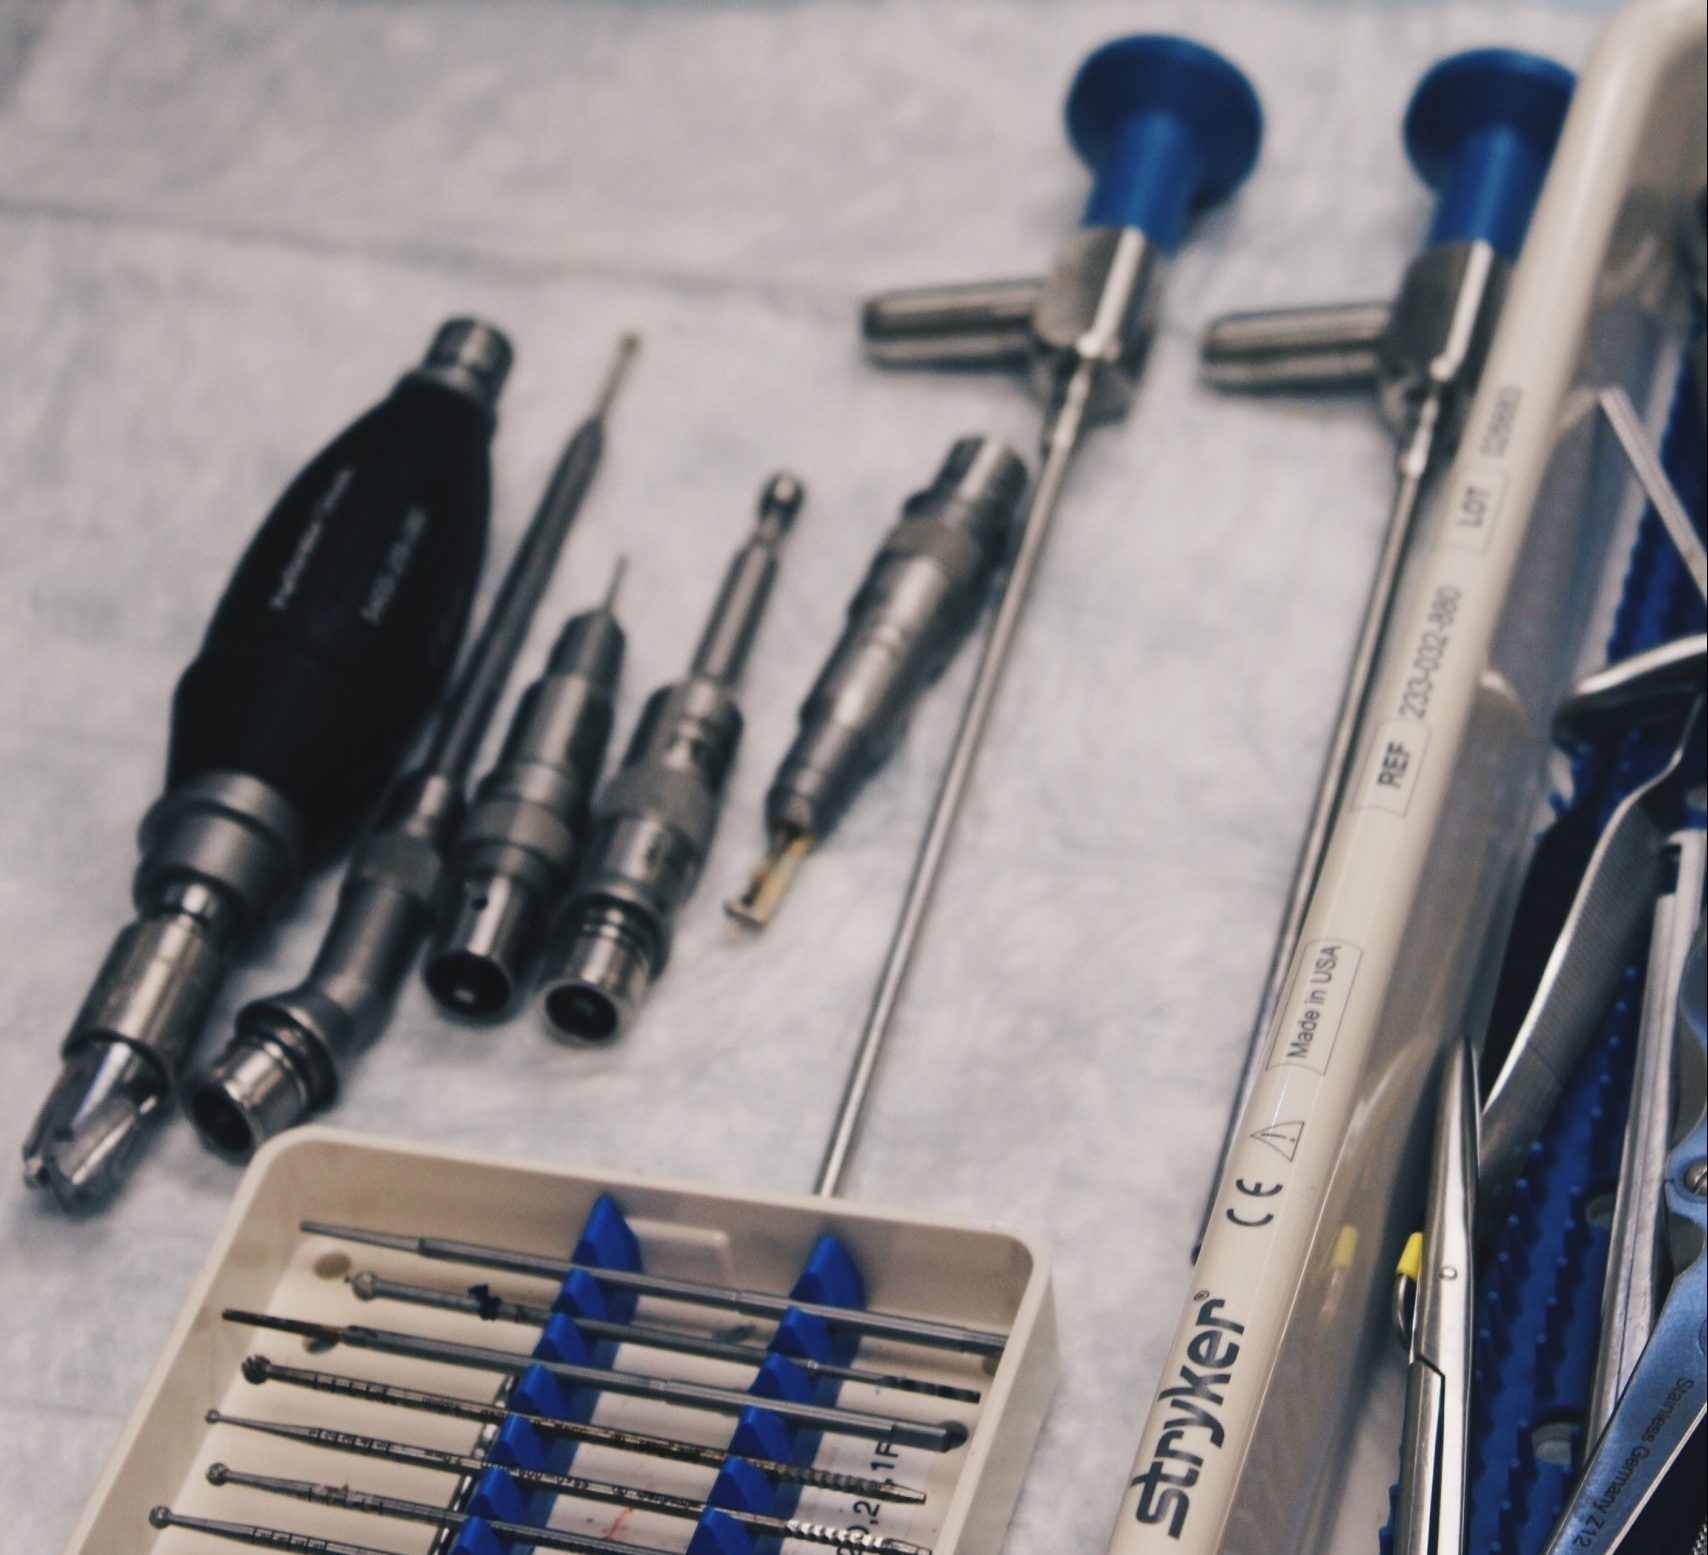 A decorative image of surgical instruments in which Alphasonics have the ability to clean to a medical grade standard with their range of Medstar systems.